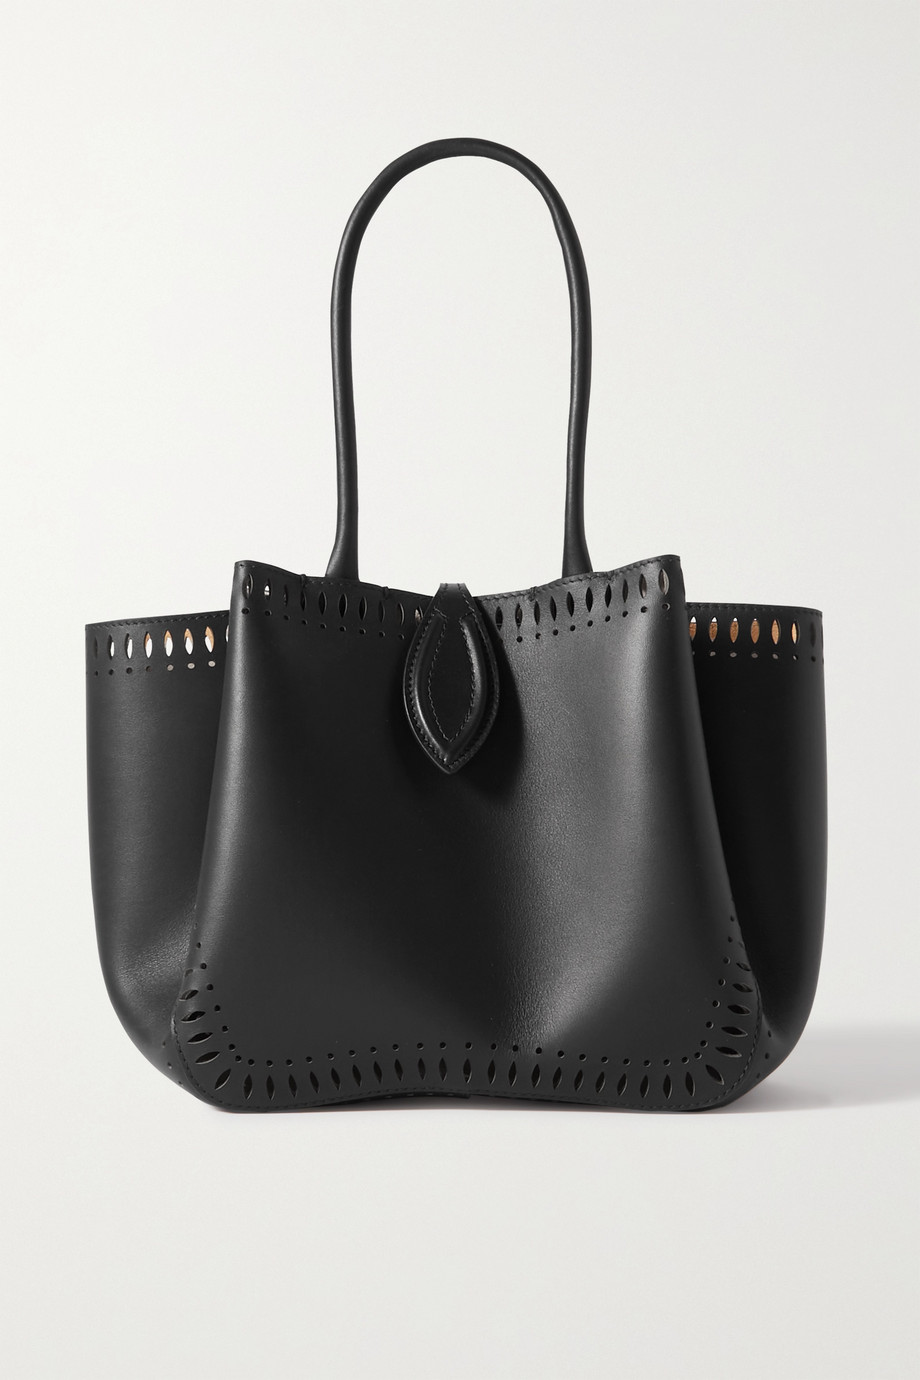 Alaïa Angèle 20 XS laser-cut leather tote